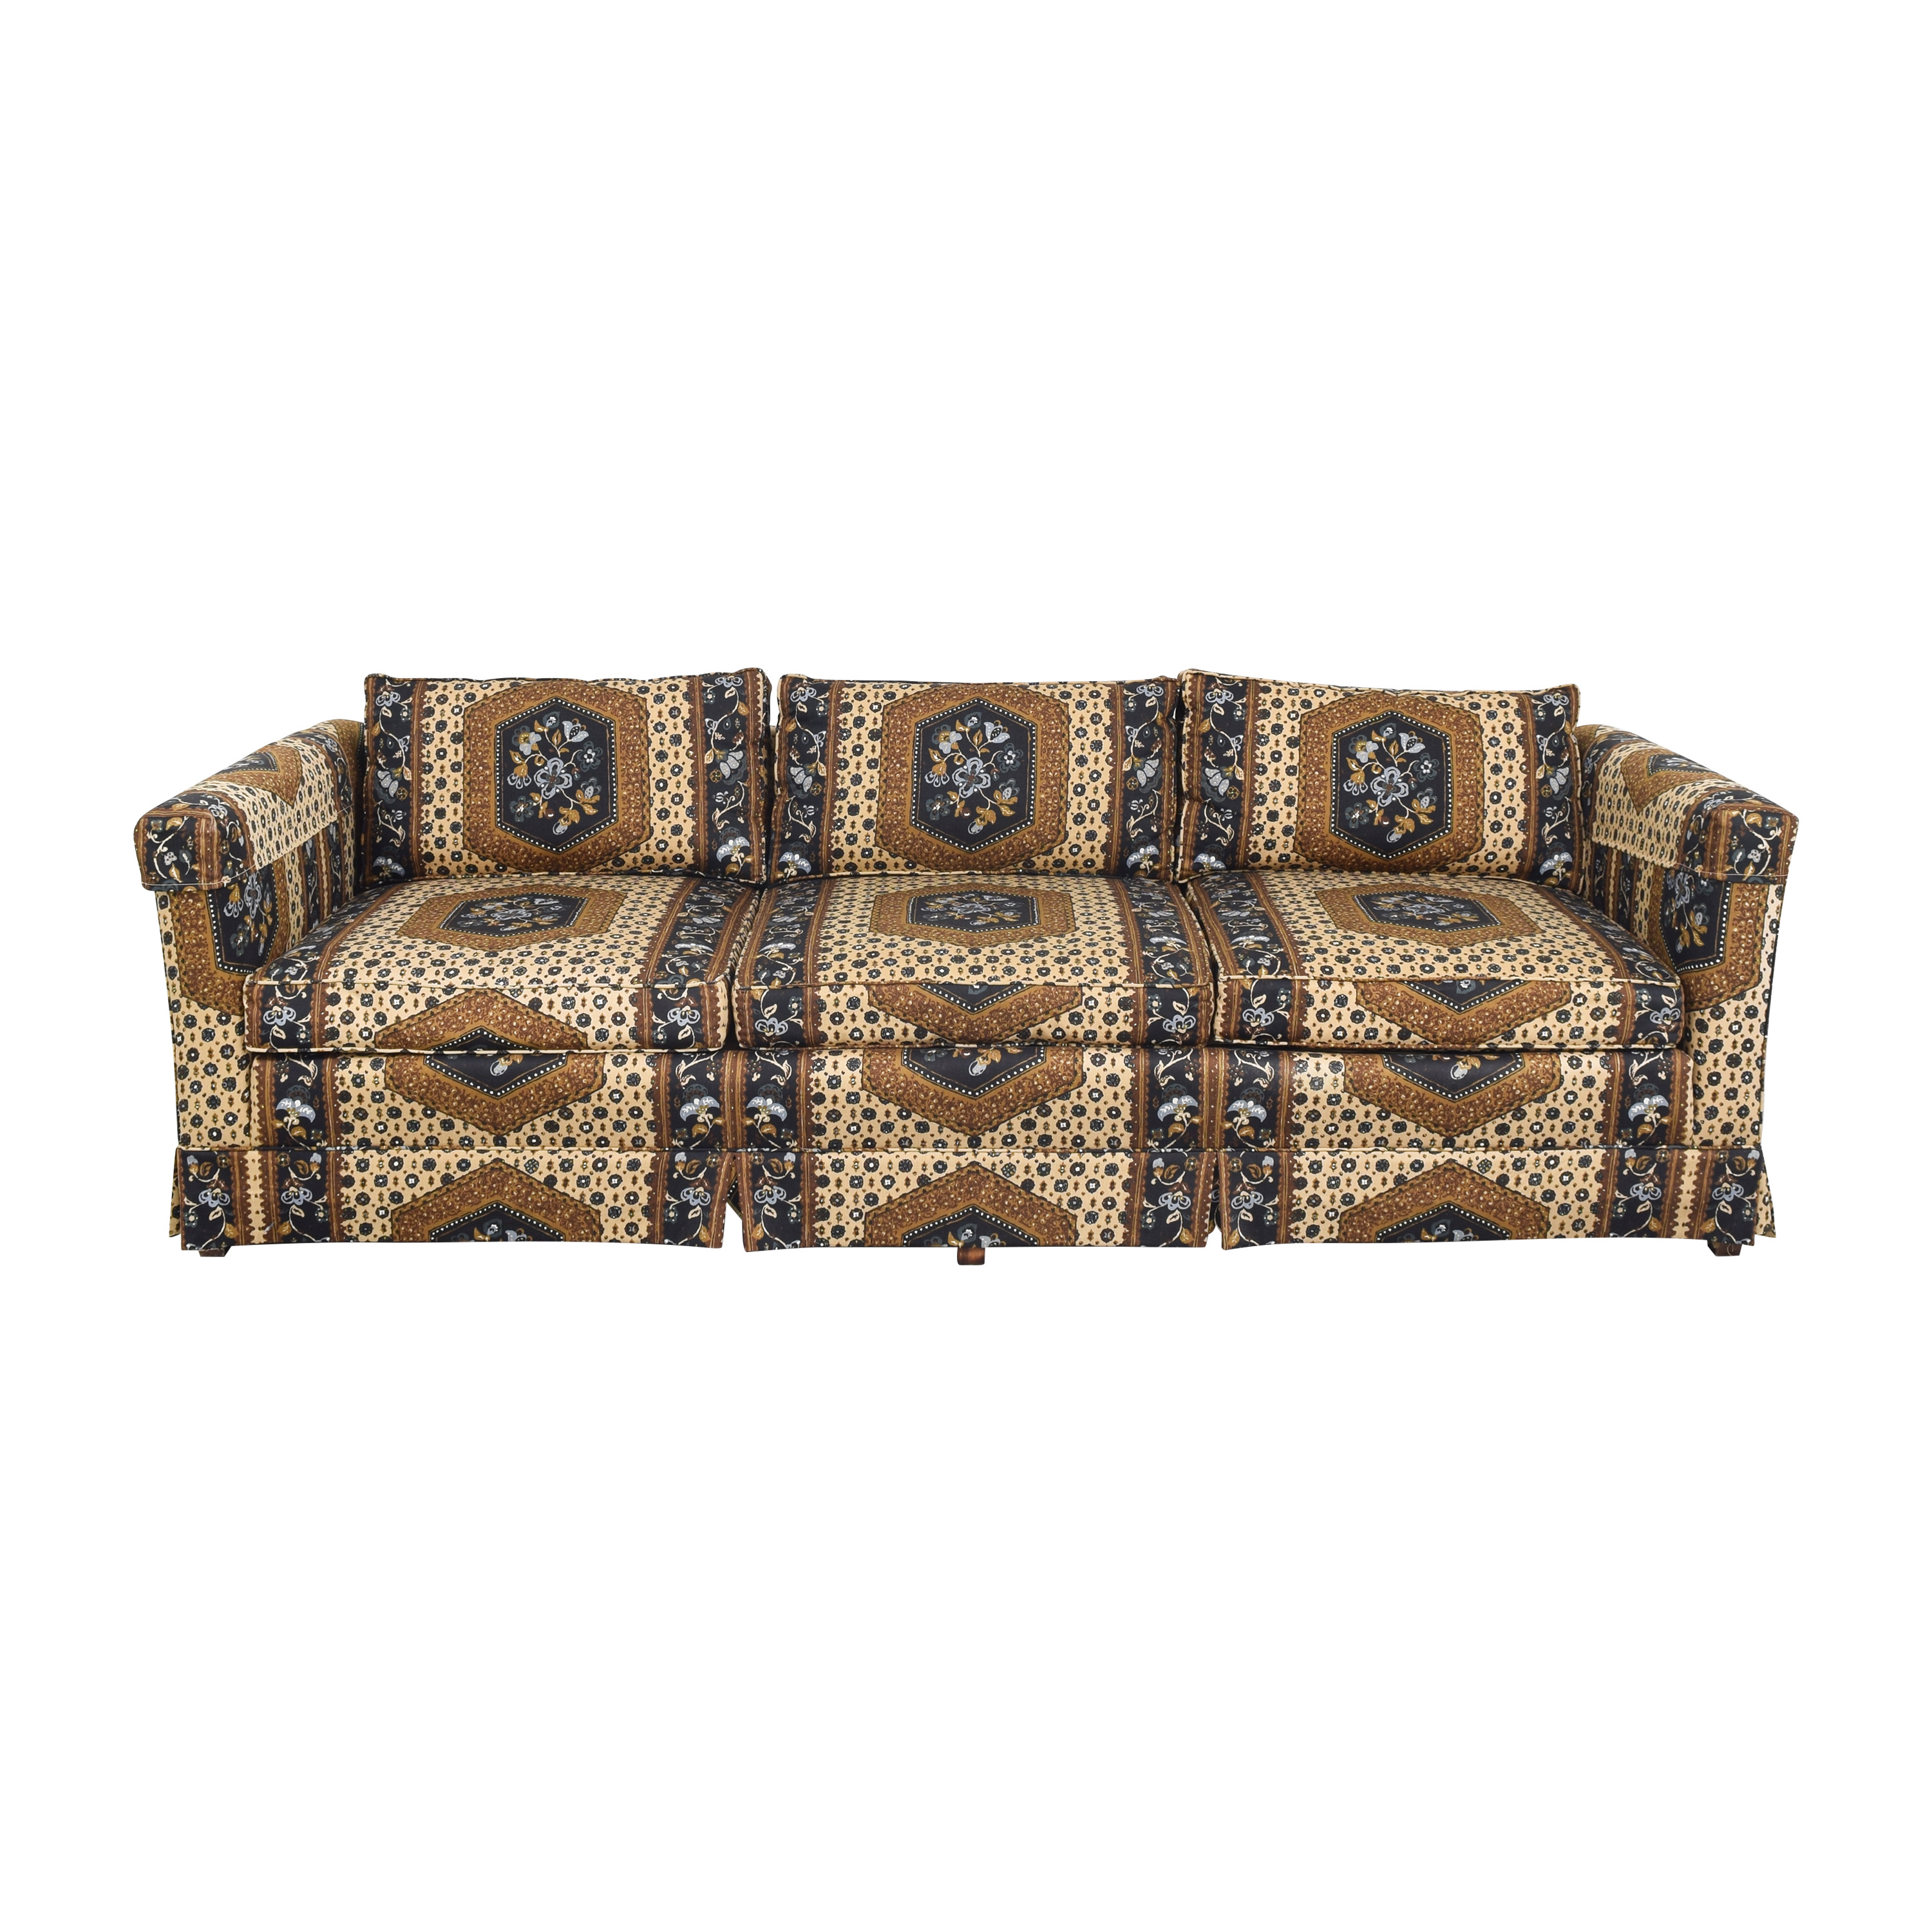 Patterned Three Seater Sofa for sale